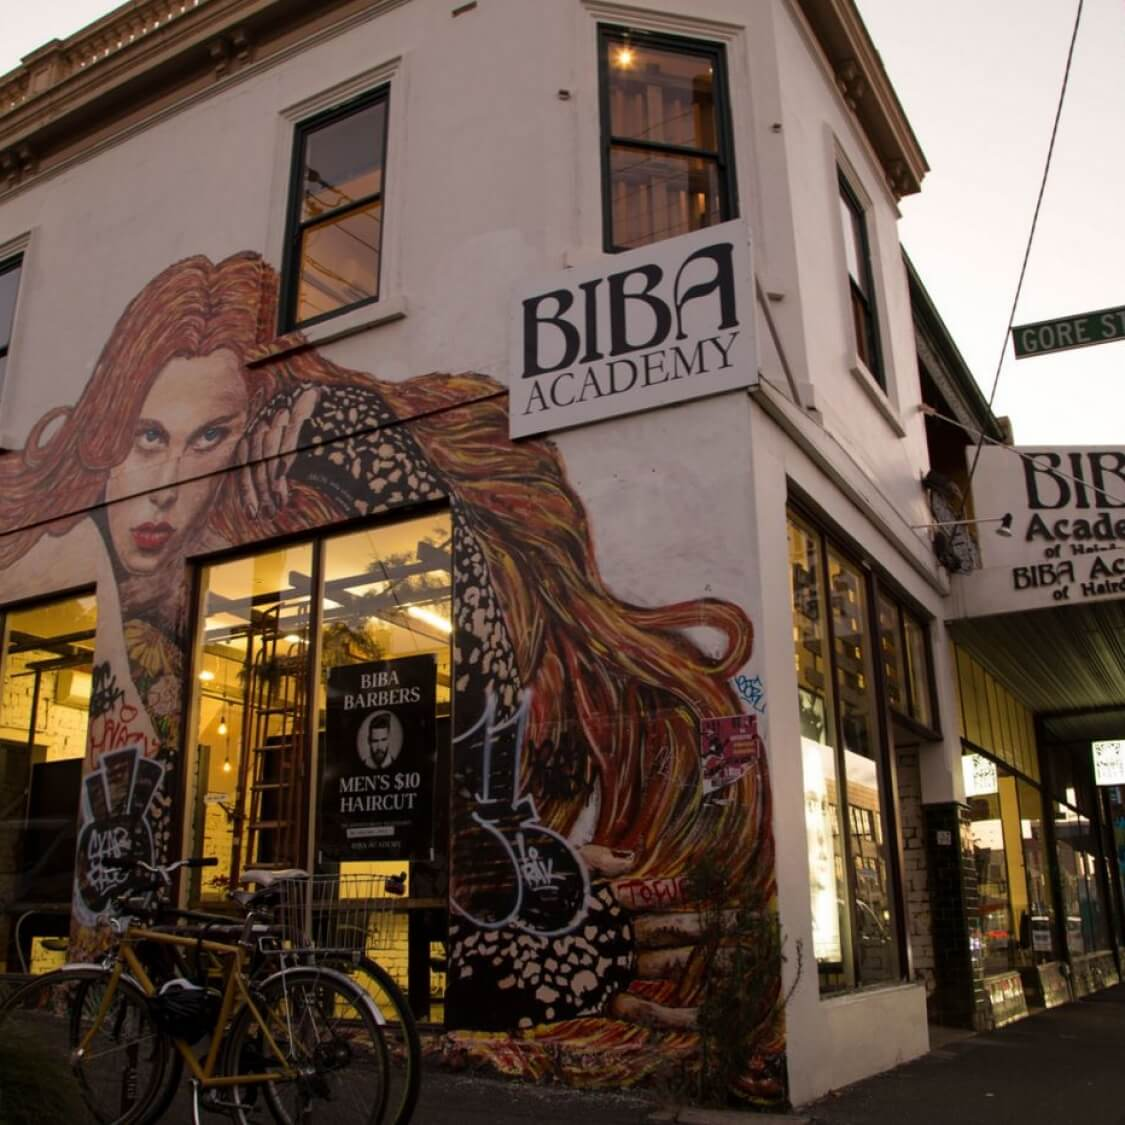 Salon Owners Love BIBA Hair Academy